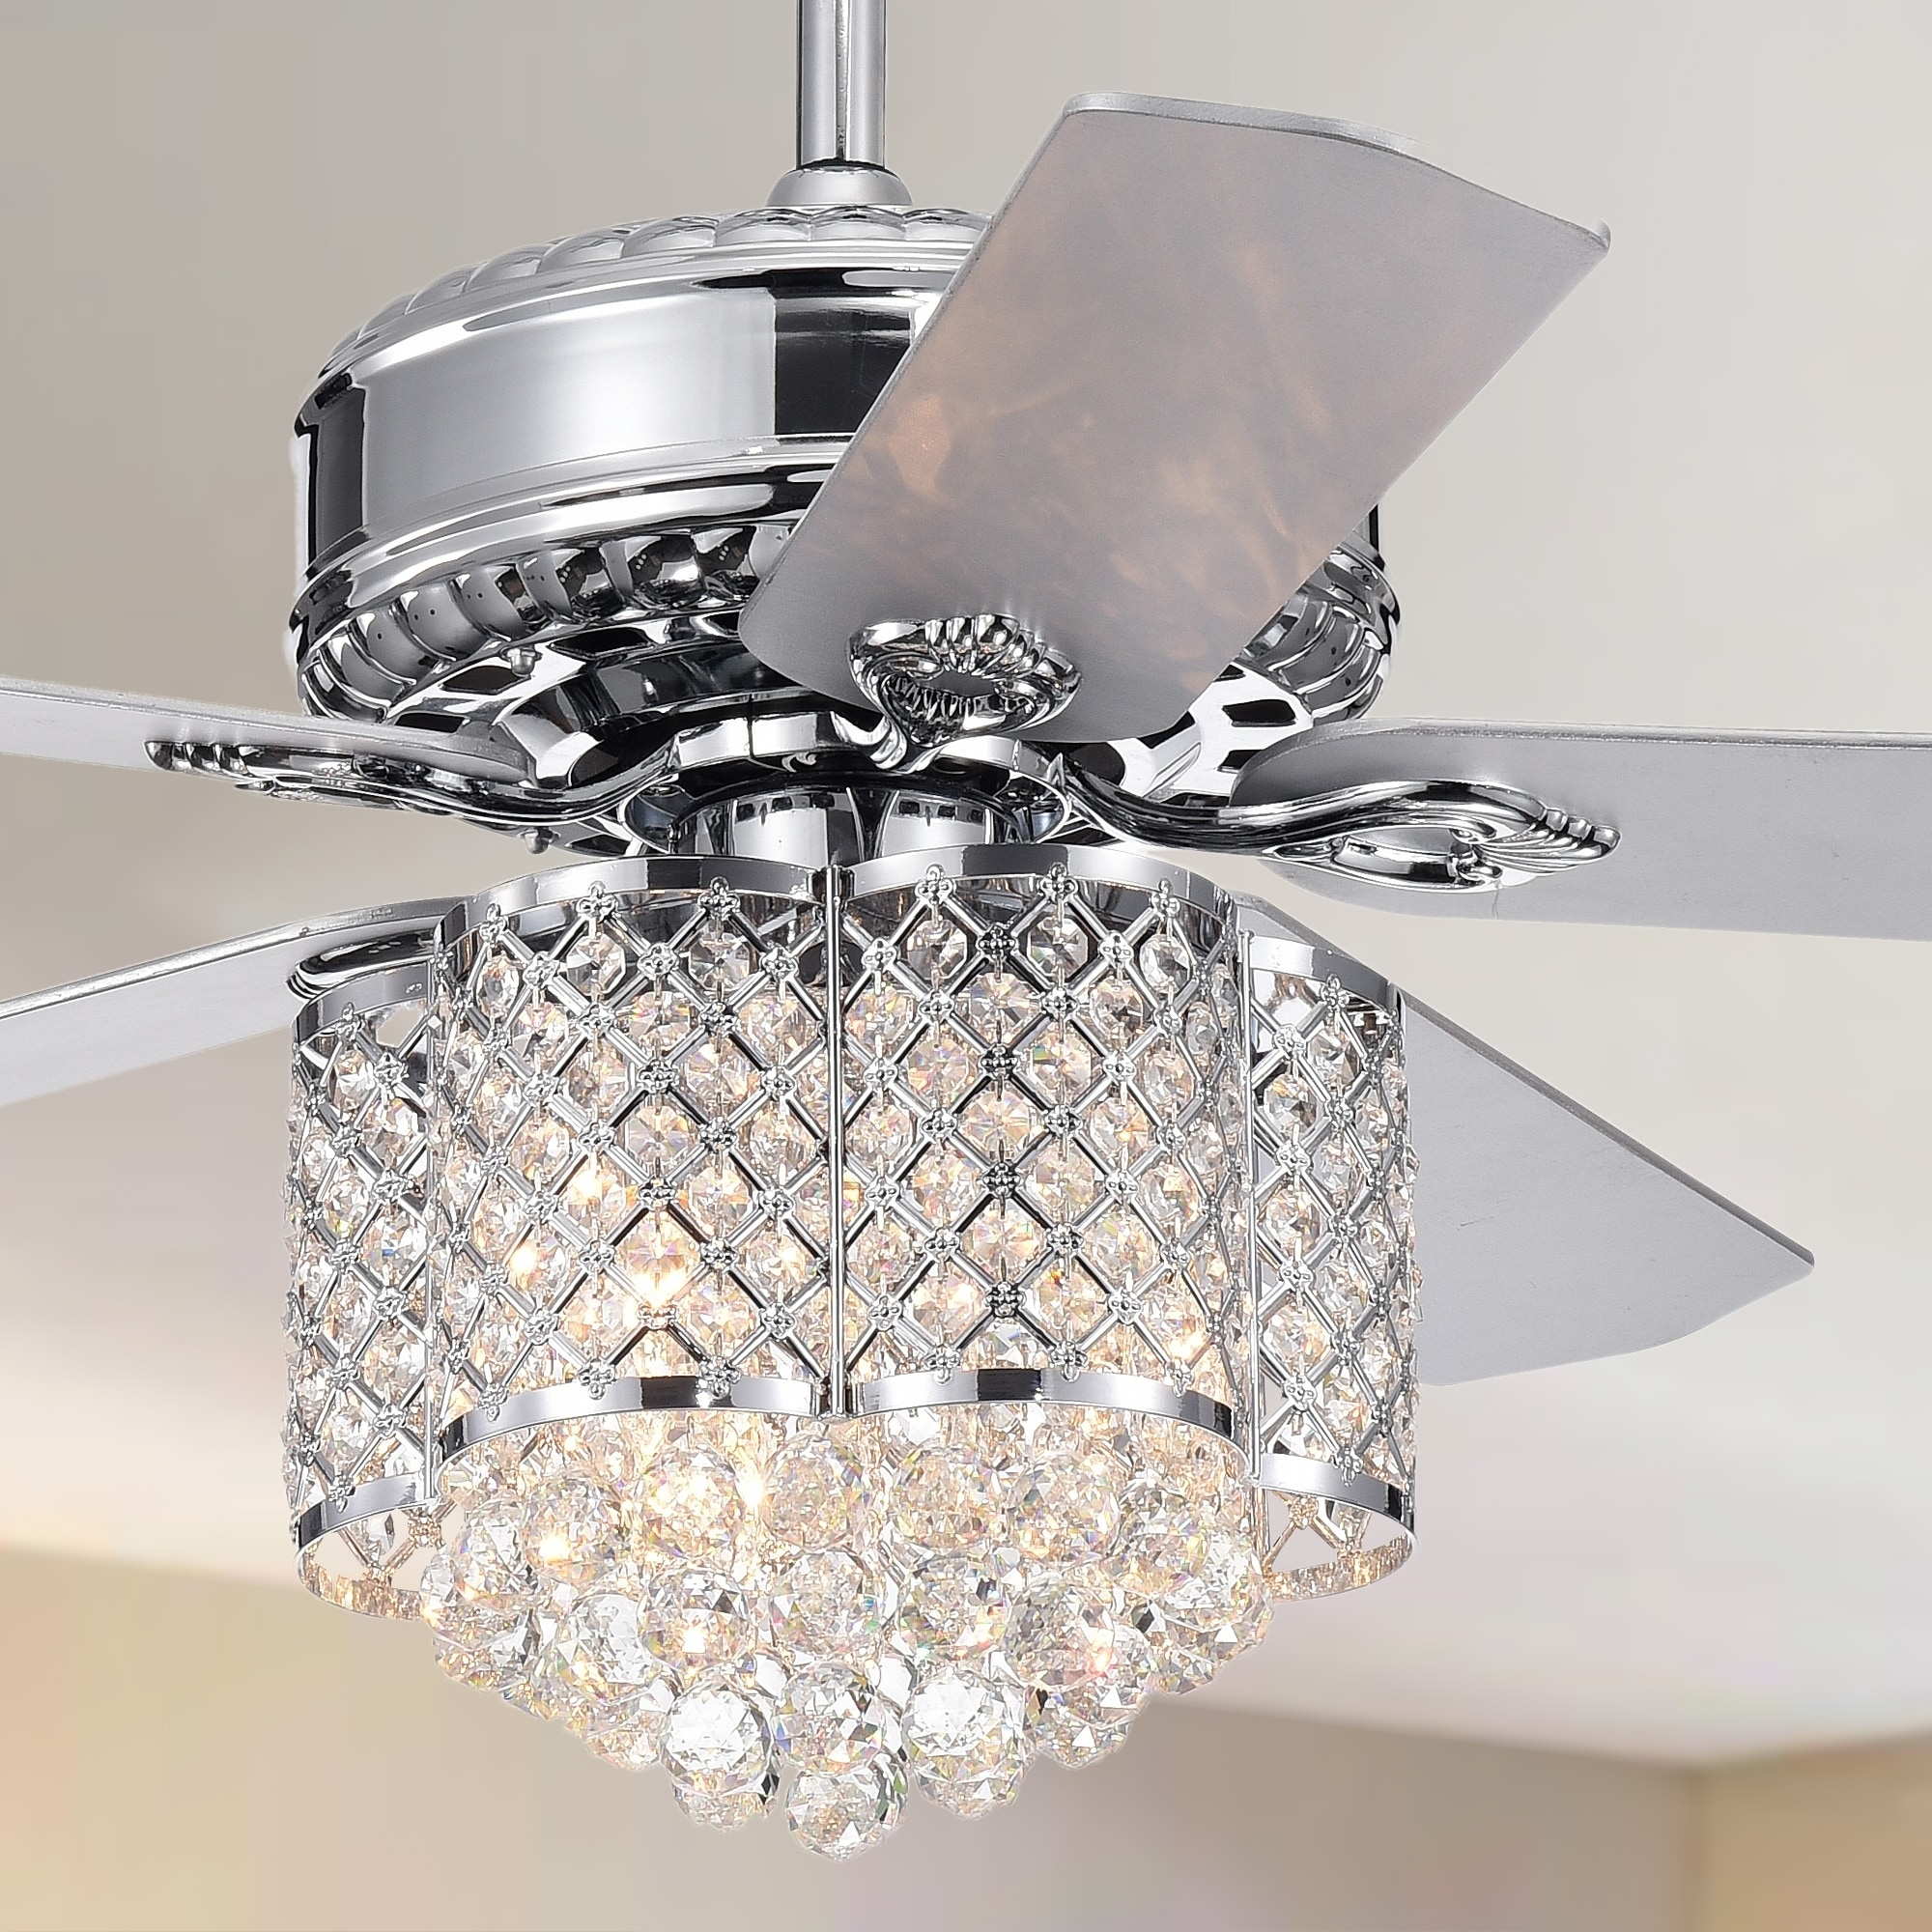 Deidor 5 blade 52 inch chrome ceiling fan with 3 light crystal chandelier remote controlled 2 color option